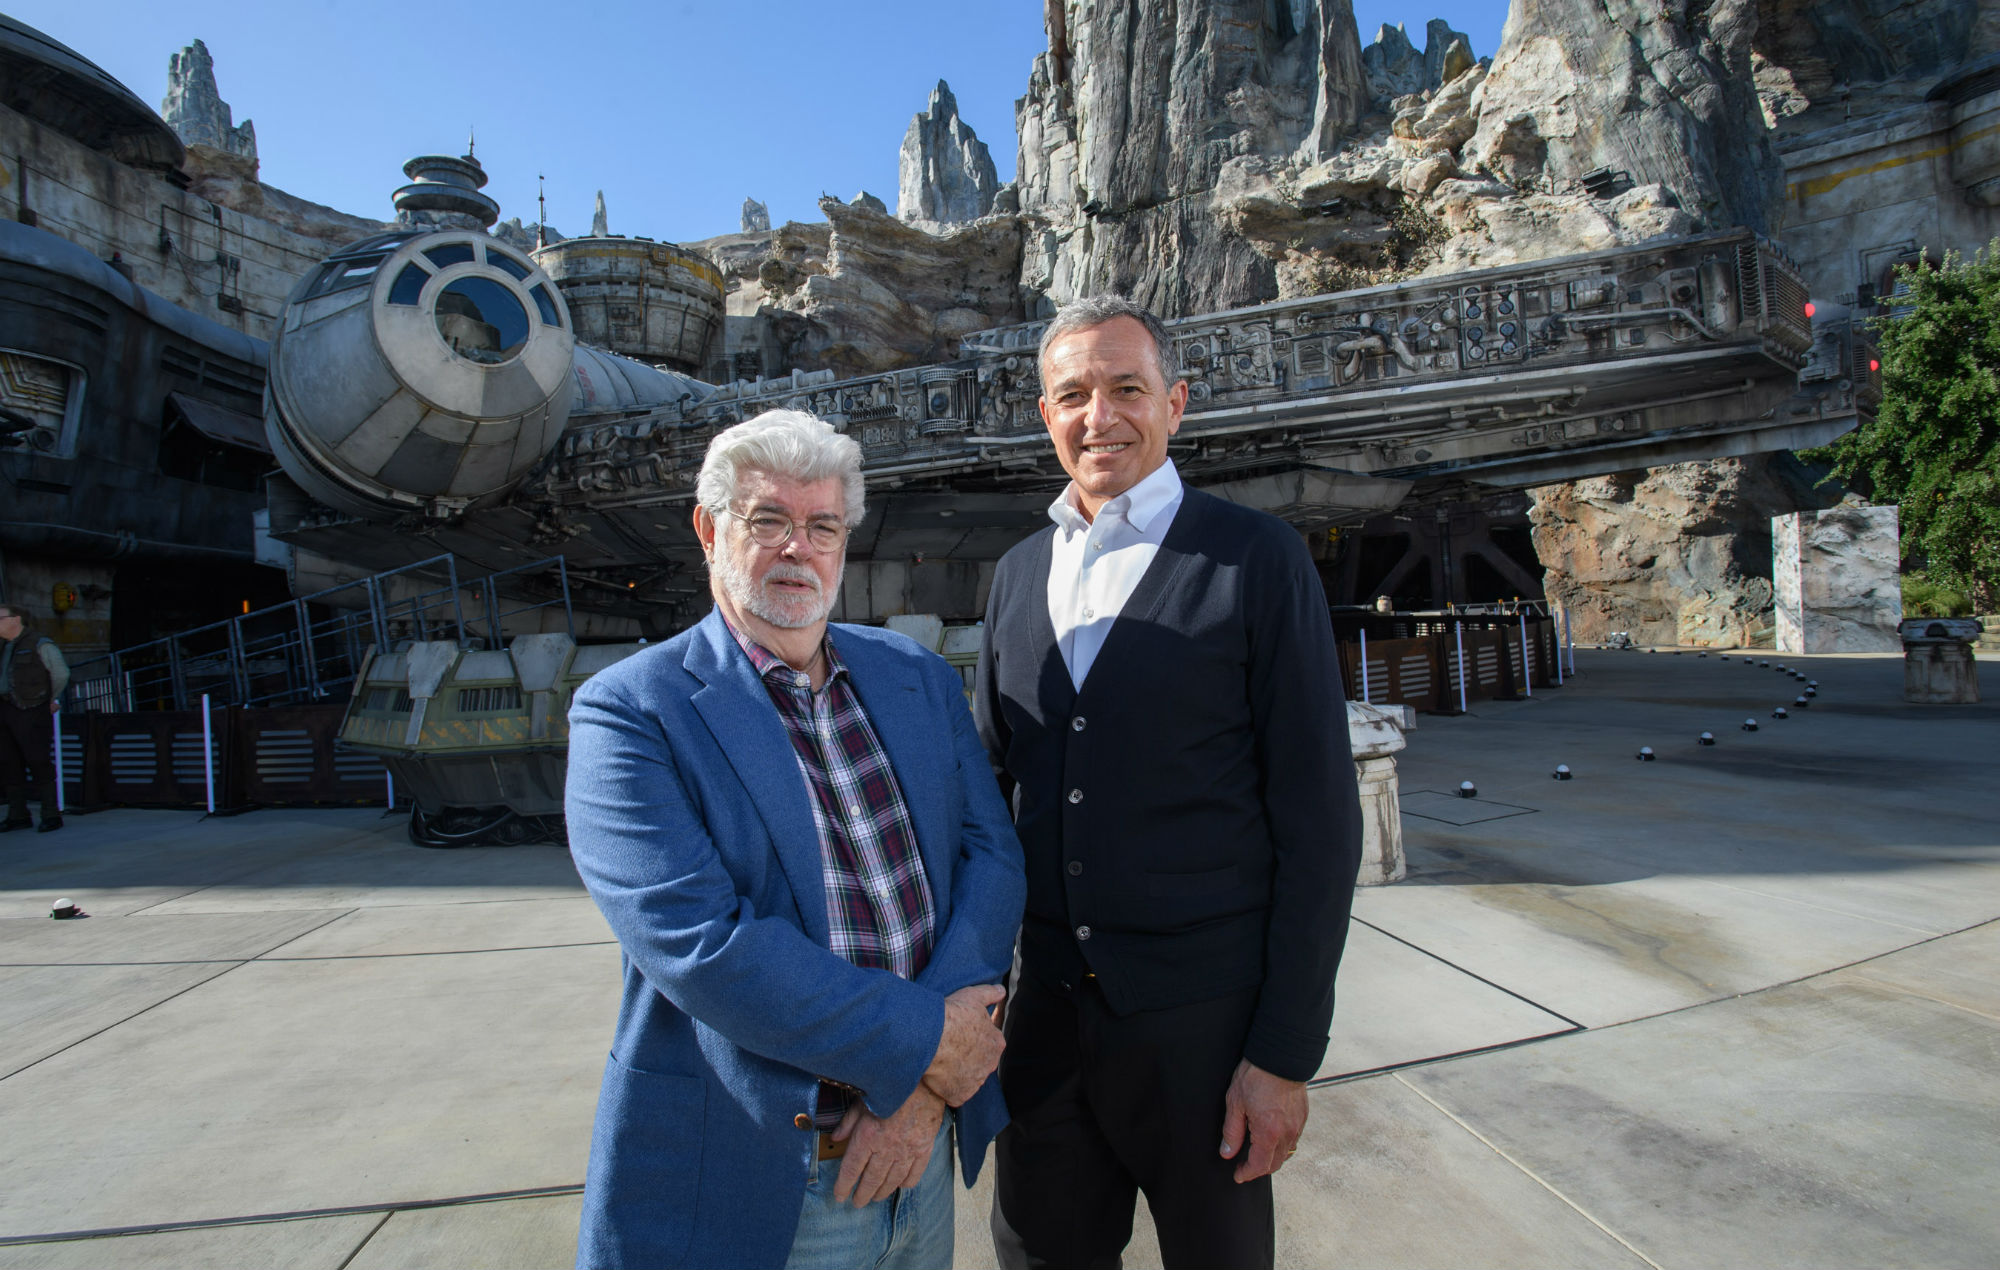 George Lucas Felt Betrayed By Disney S Plans For The Star Wars Sequel Trilogy